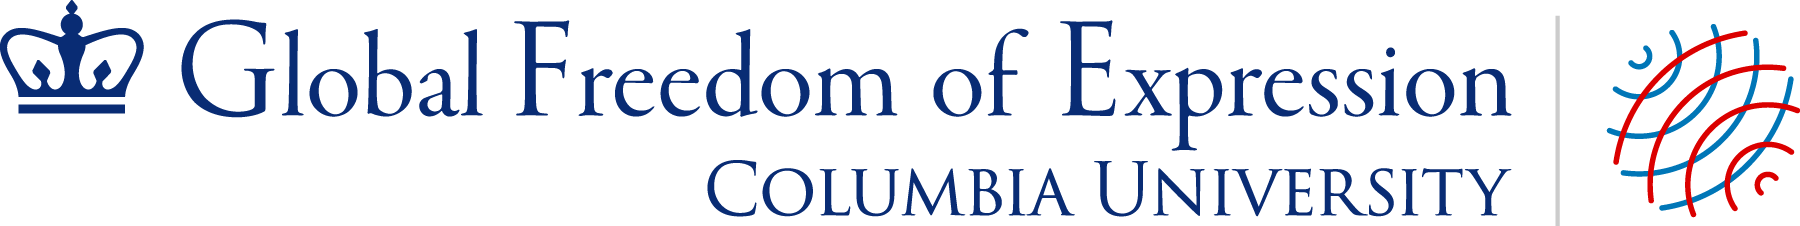 Columbia Global Freedom of Expression